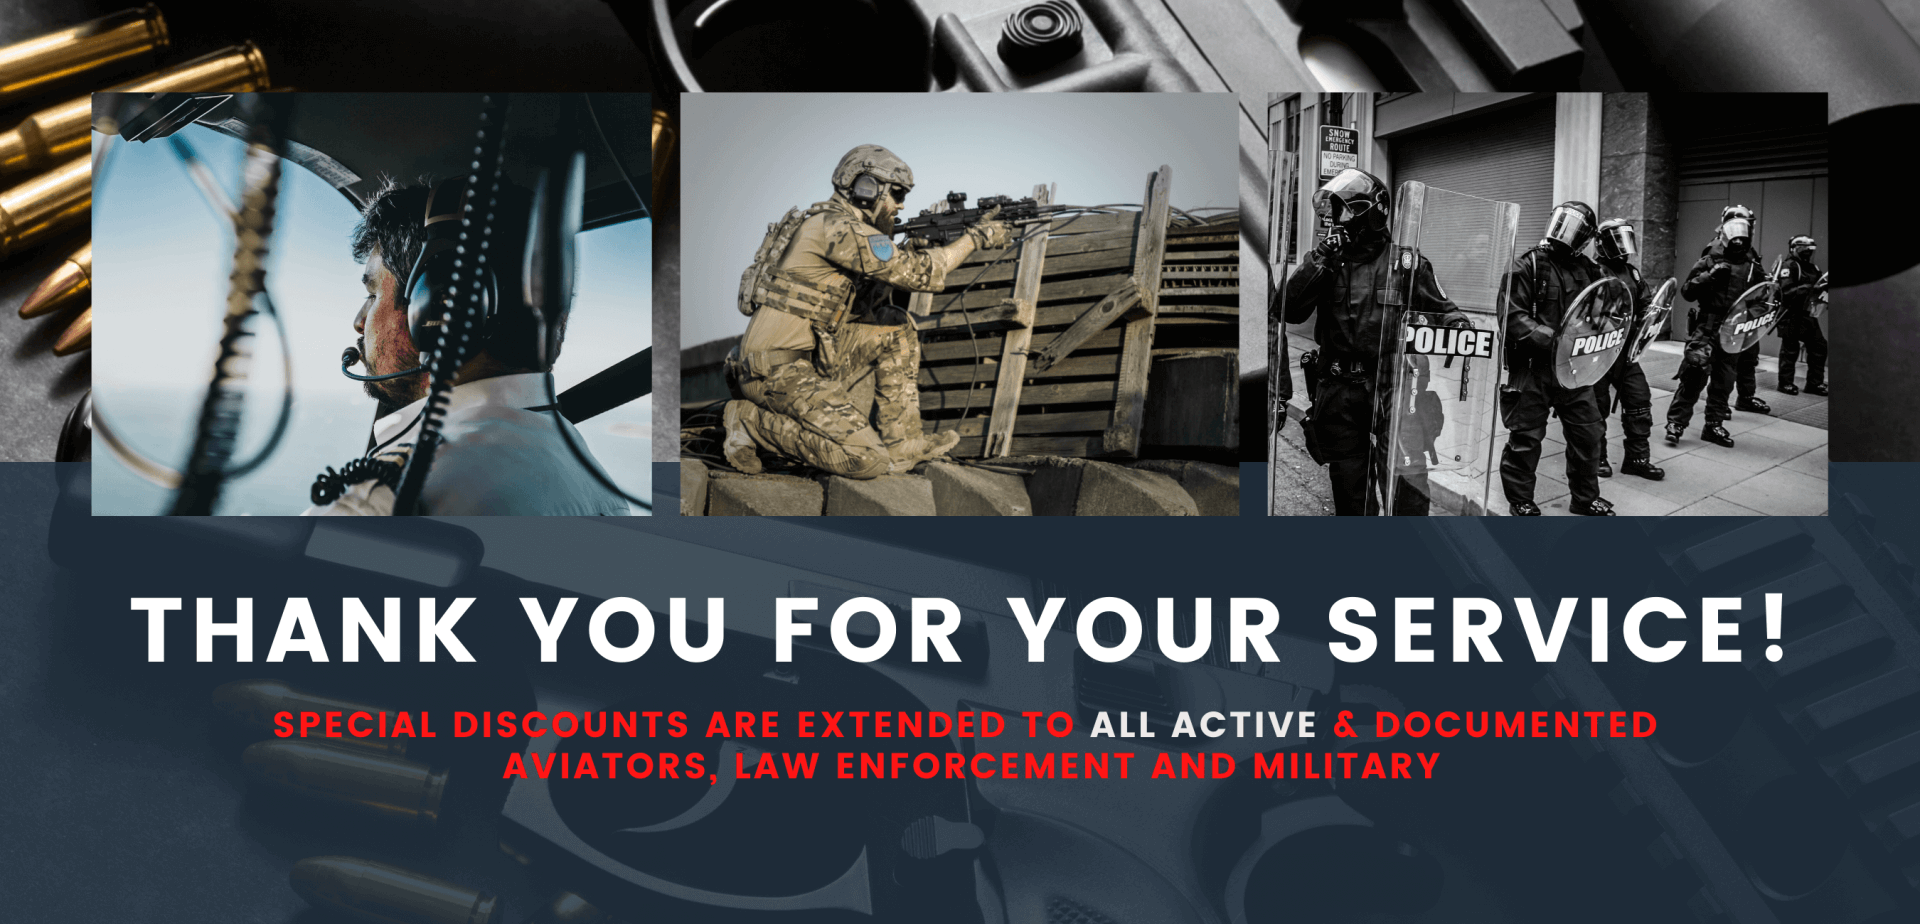 V1 Tactical | Discounts for Law Enforcement Military and Aviators